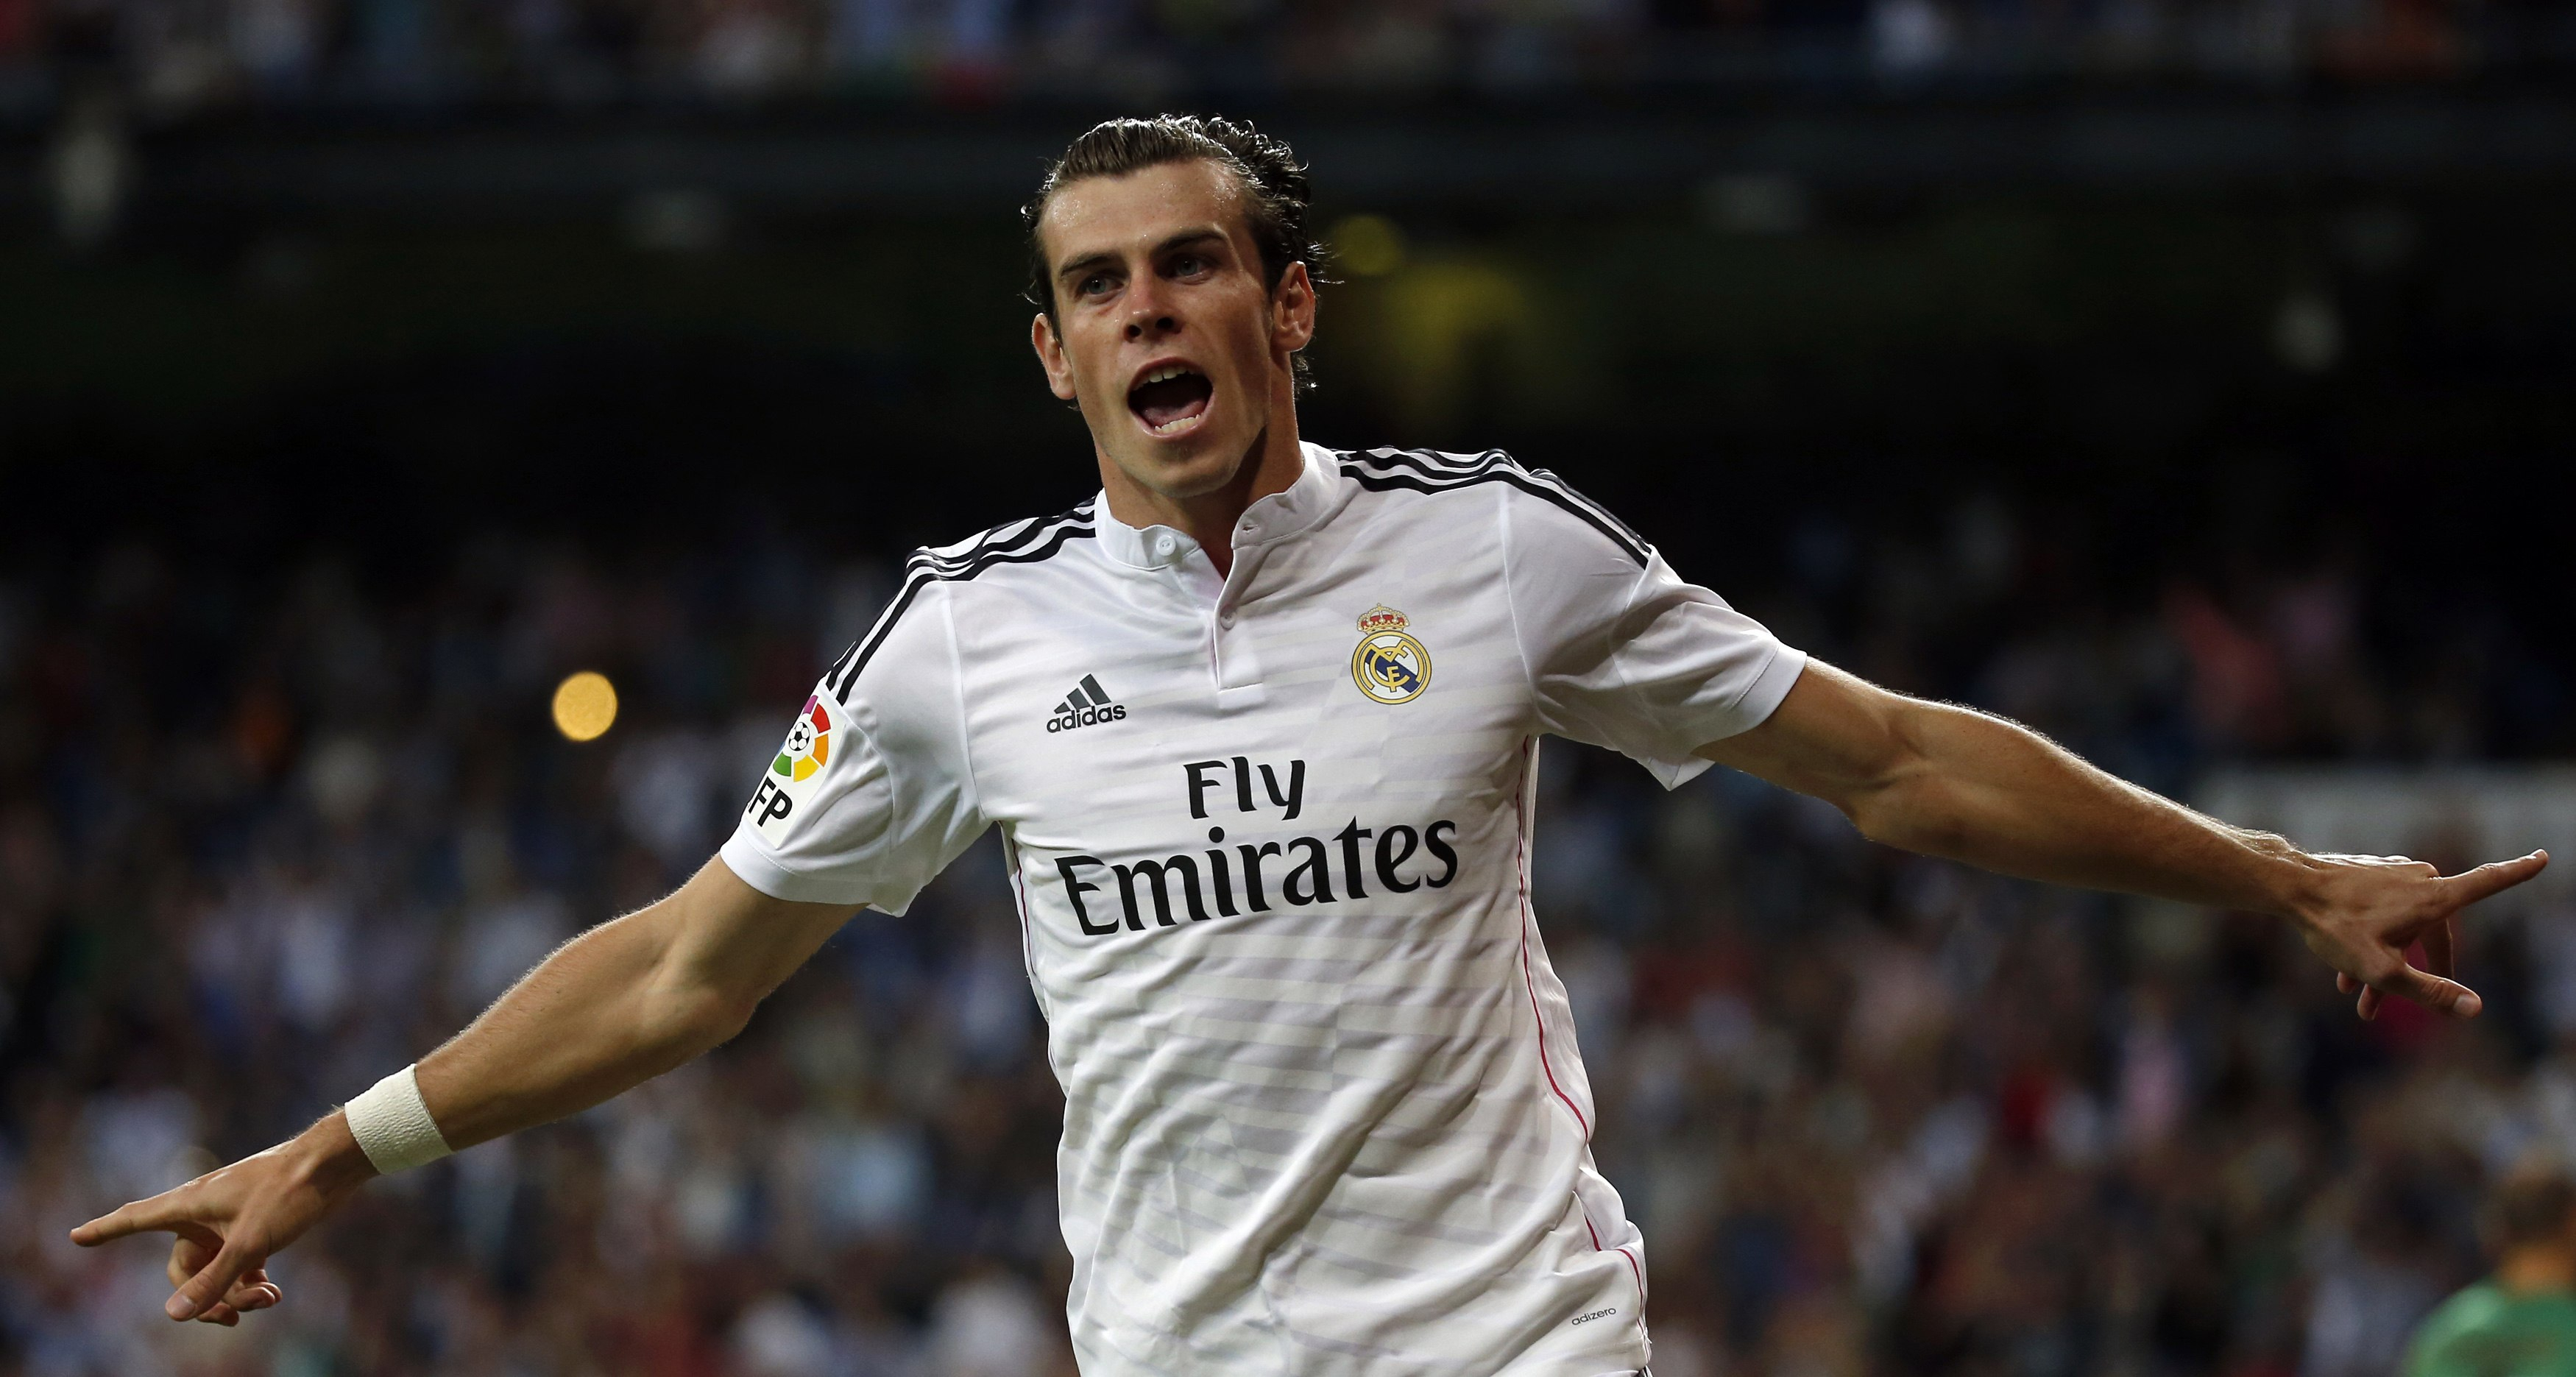 Gareth bale wallpapers images photos pictures backgrounds gareth bale download voltagebd Gallery